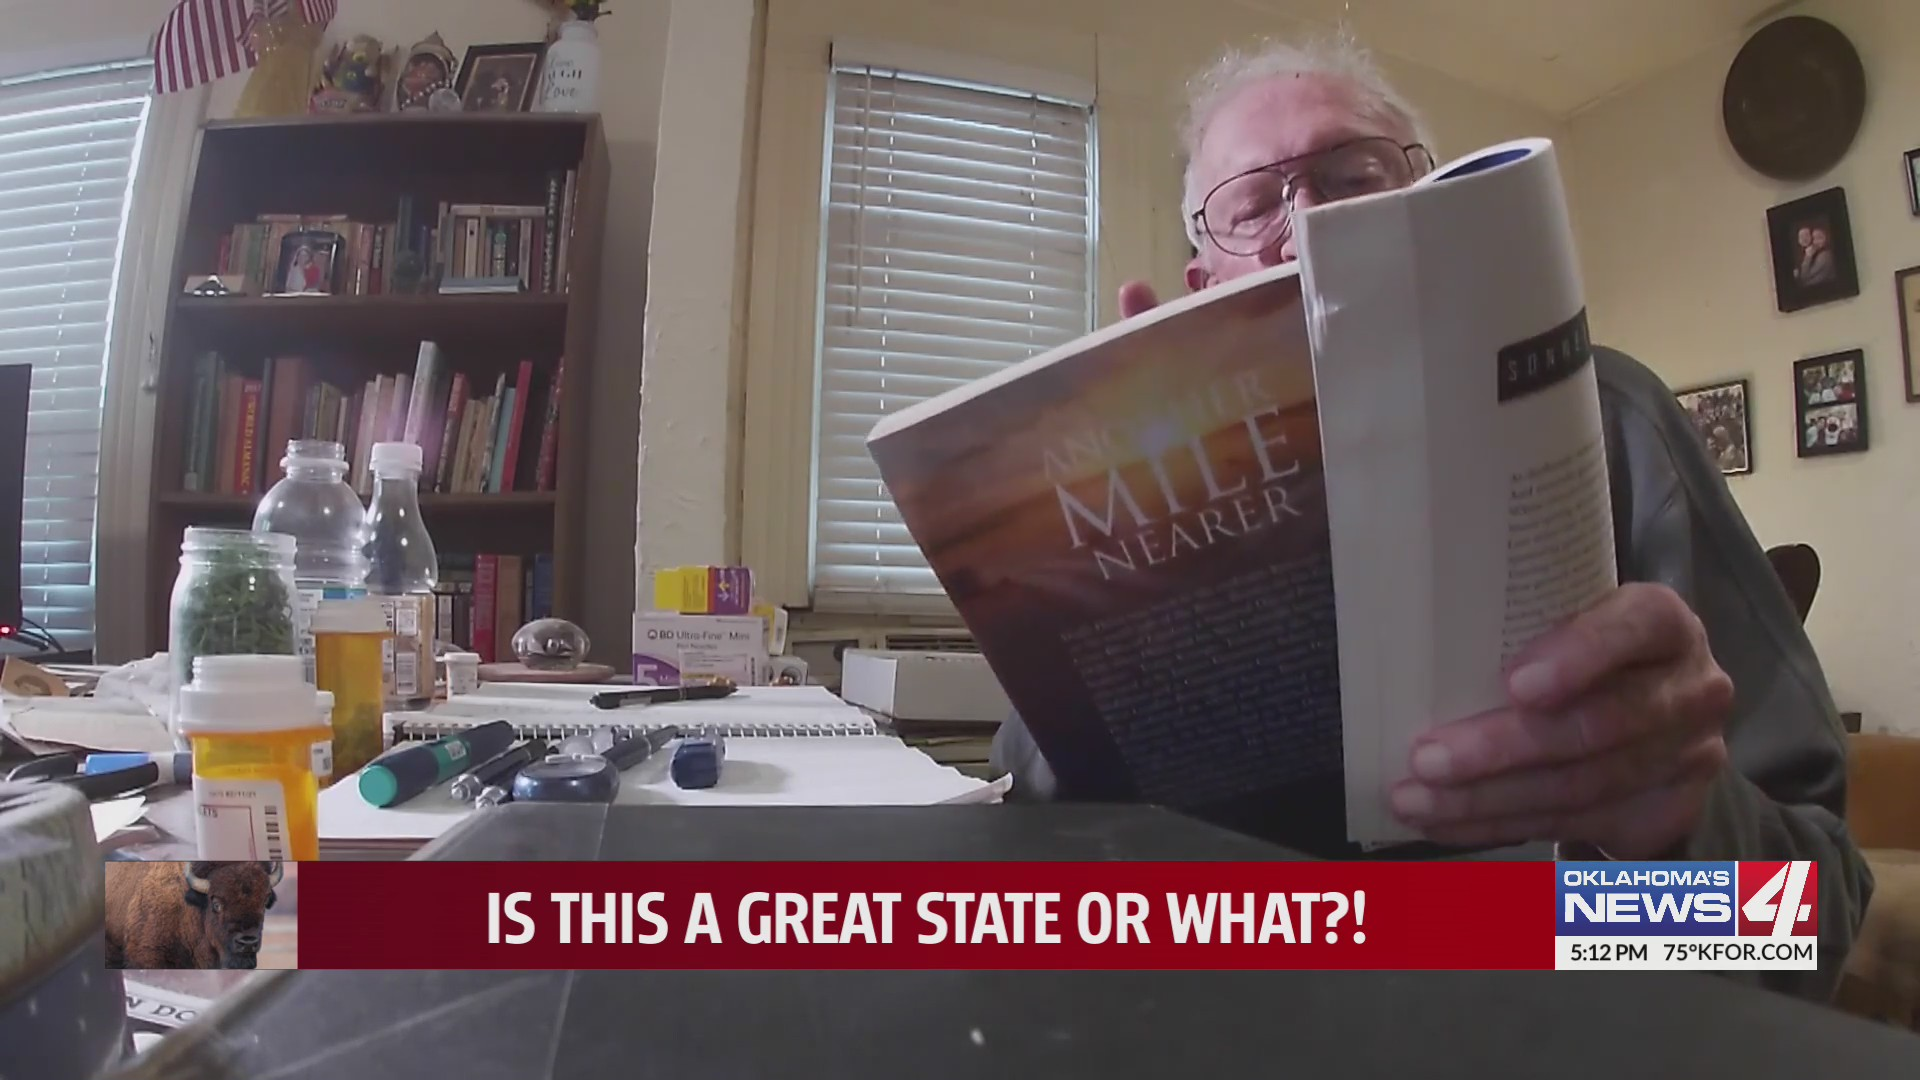 An Englishman in Oklahoma writes a book of sonnets, Shakespeare style